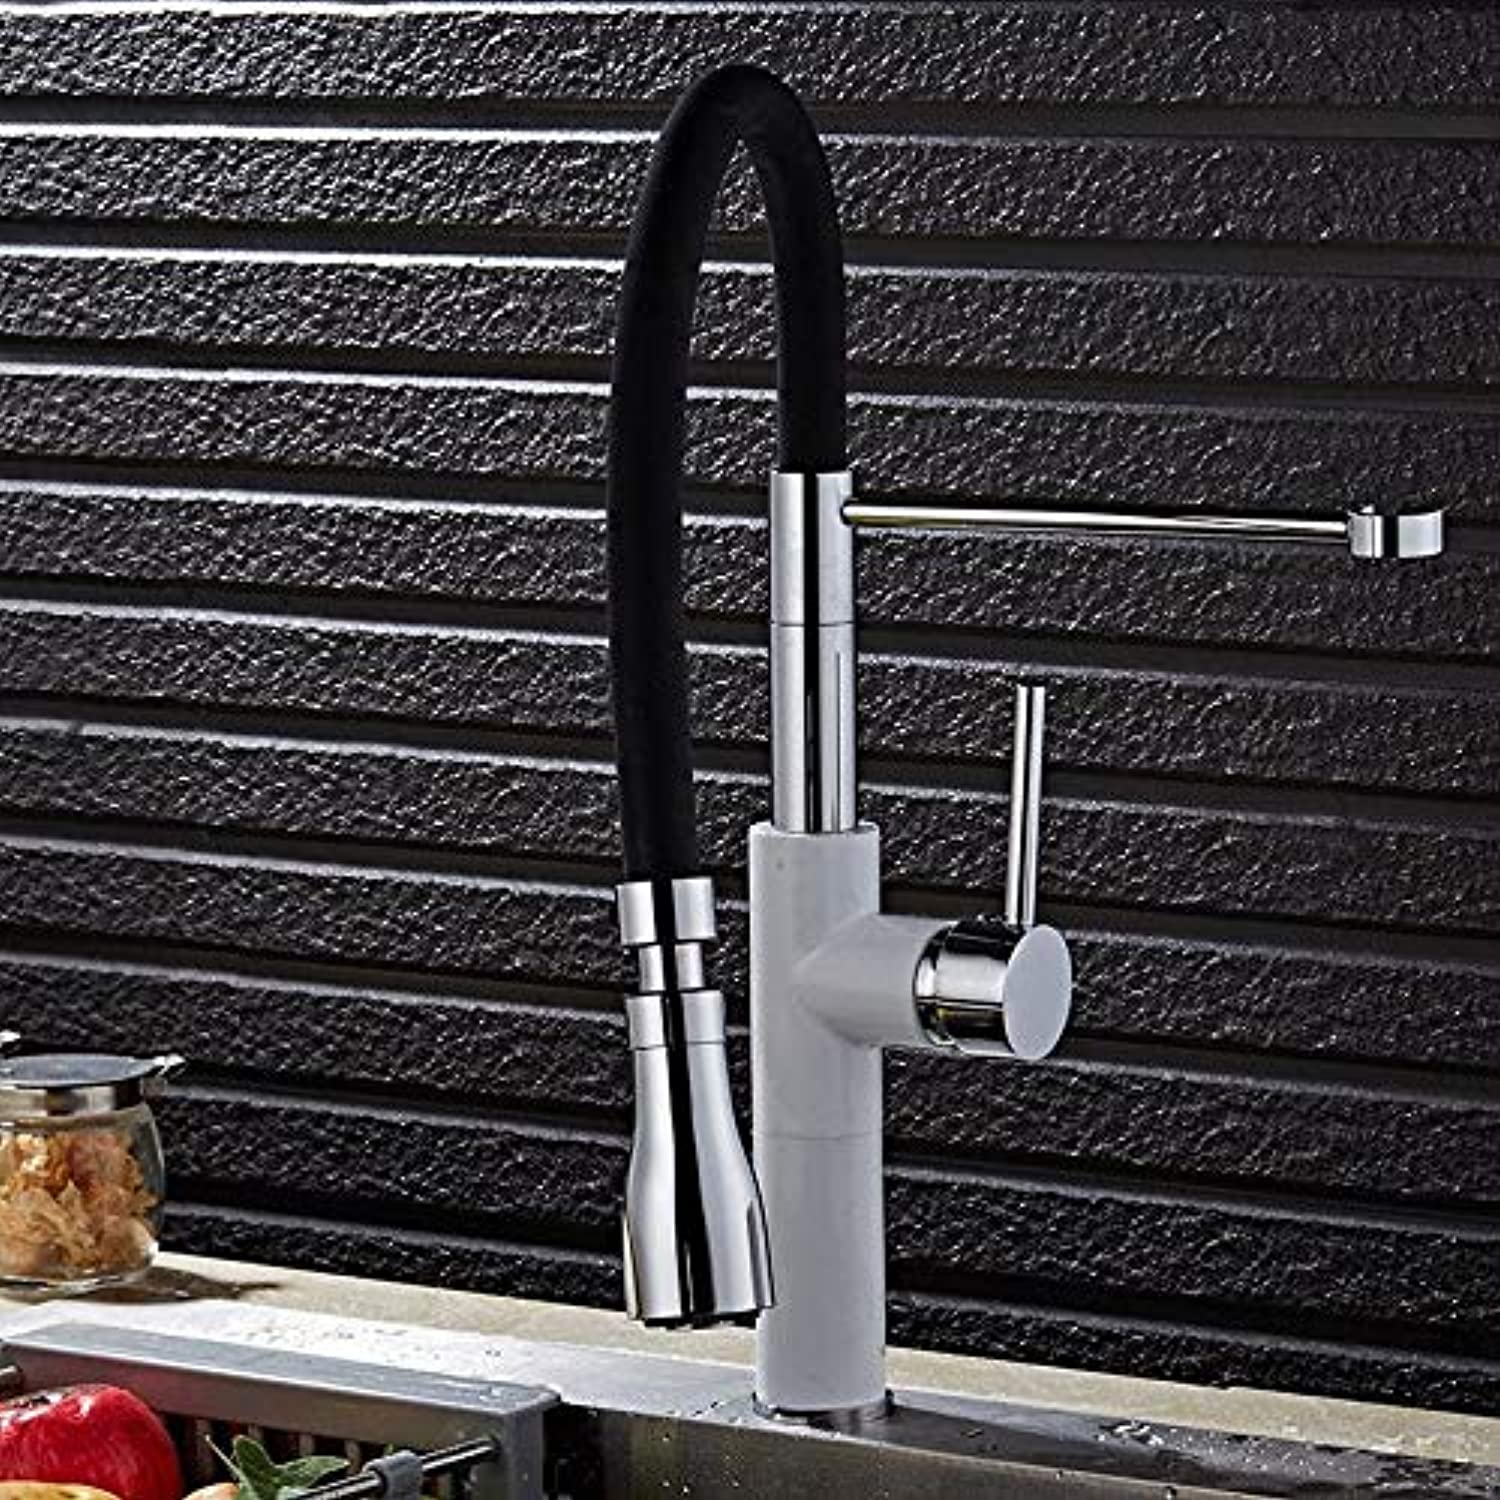 Taps Faucet White Kitchen Hot and Cold Water Faucet Sink Sink Universal Faucet